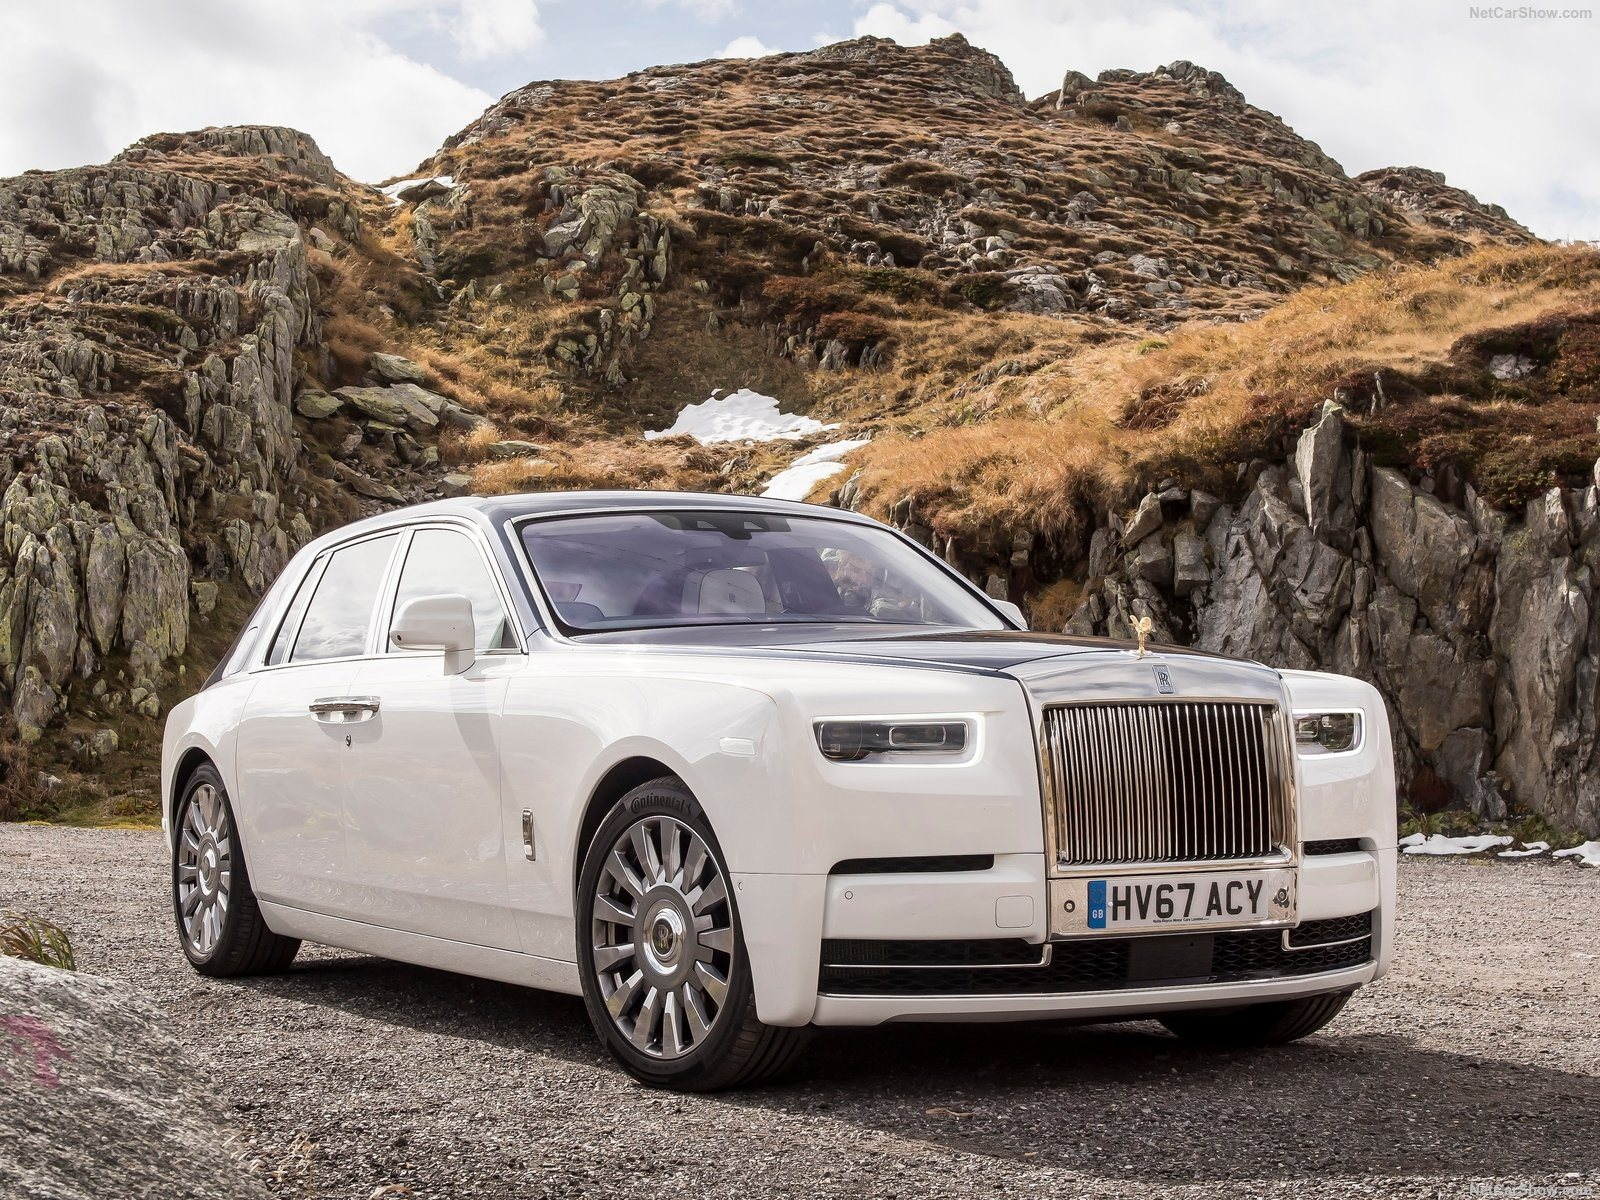 2018 Rolls Royce Phantom Review Review Trims Specs And Price Carbuzz